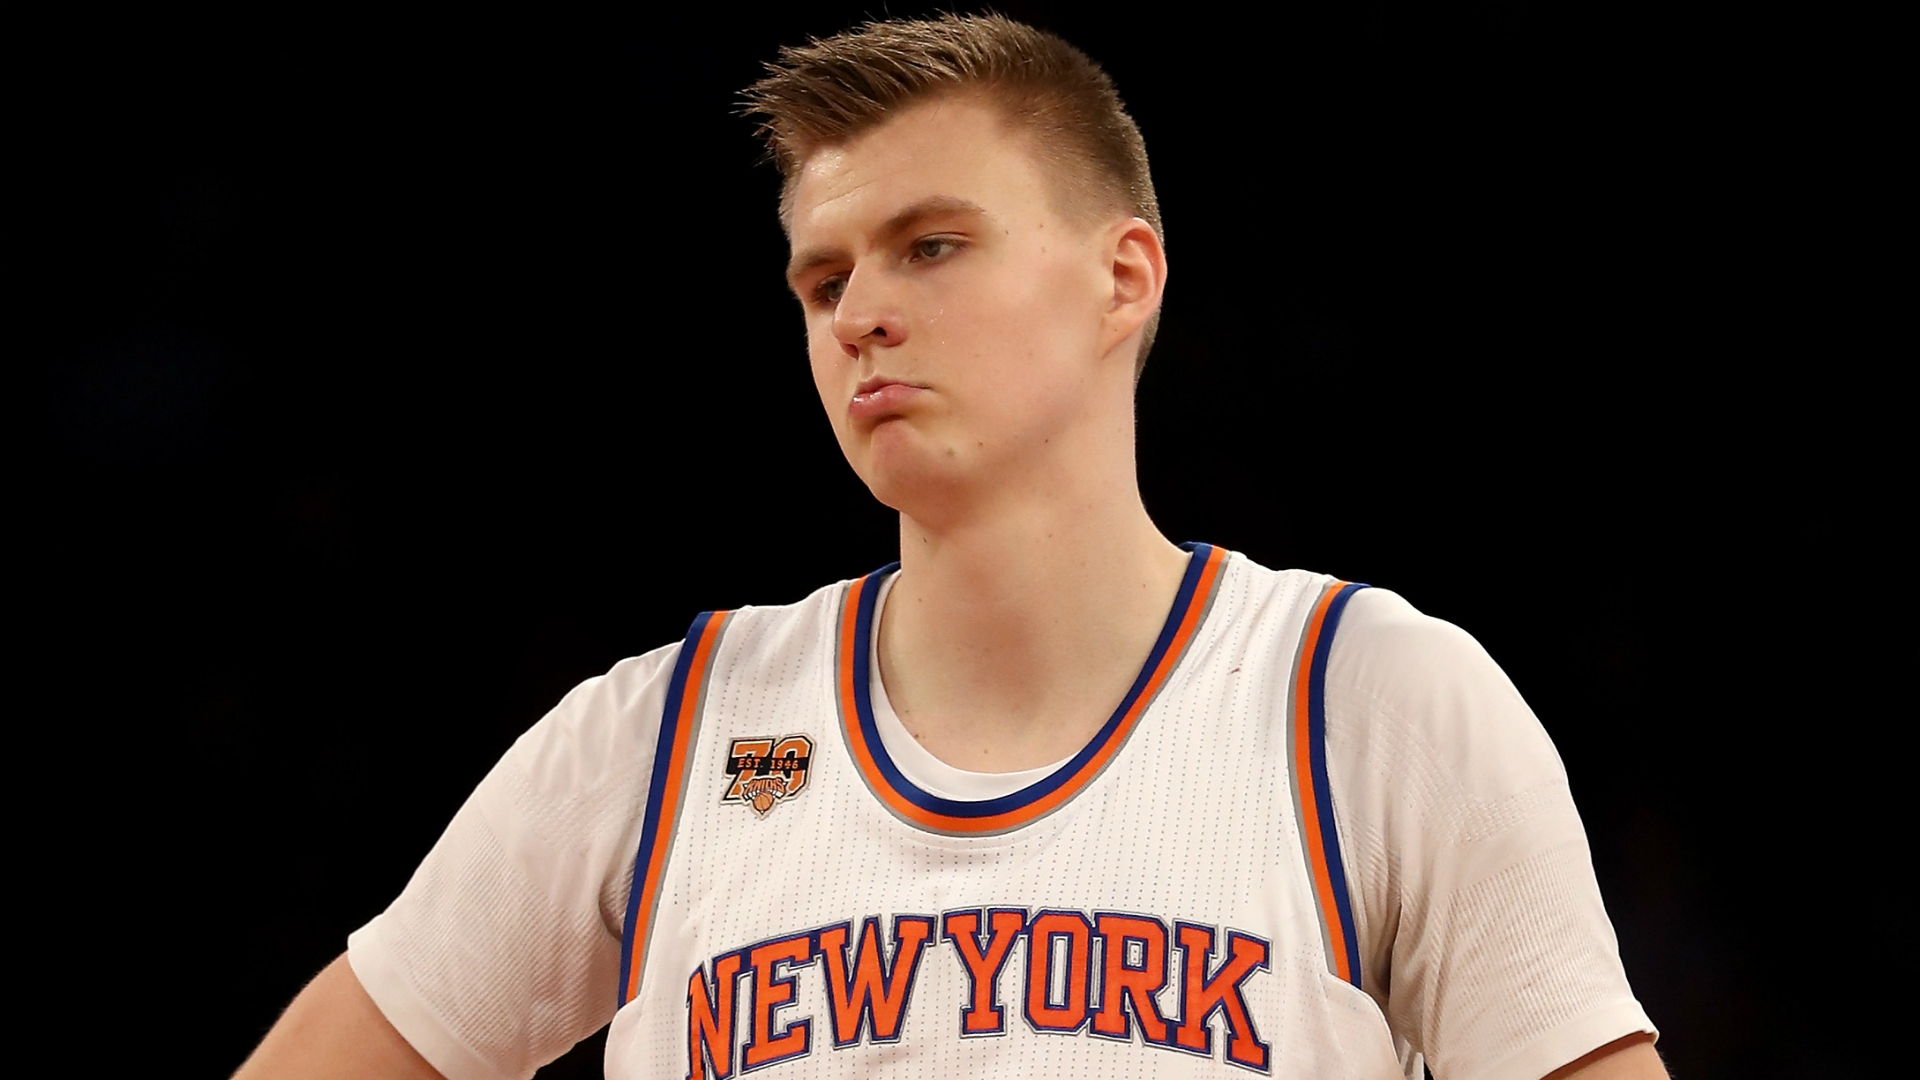 Jeff Hornacek will let Kristaps Porzingis learn by fire